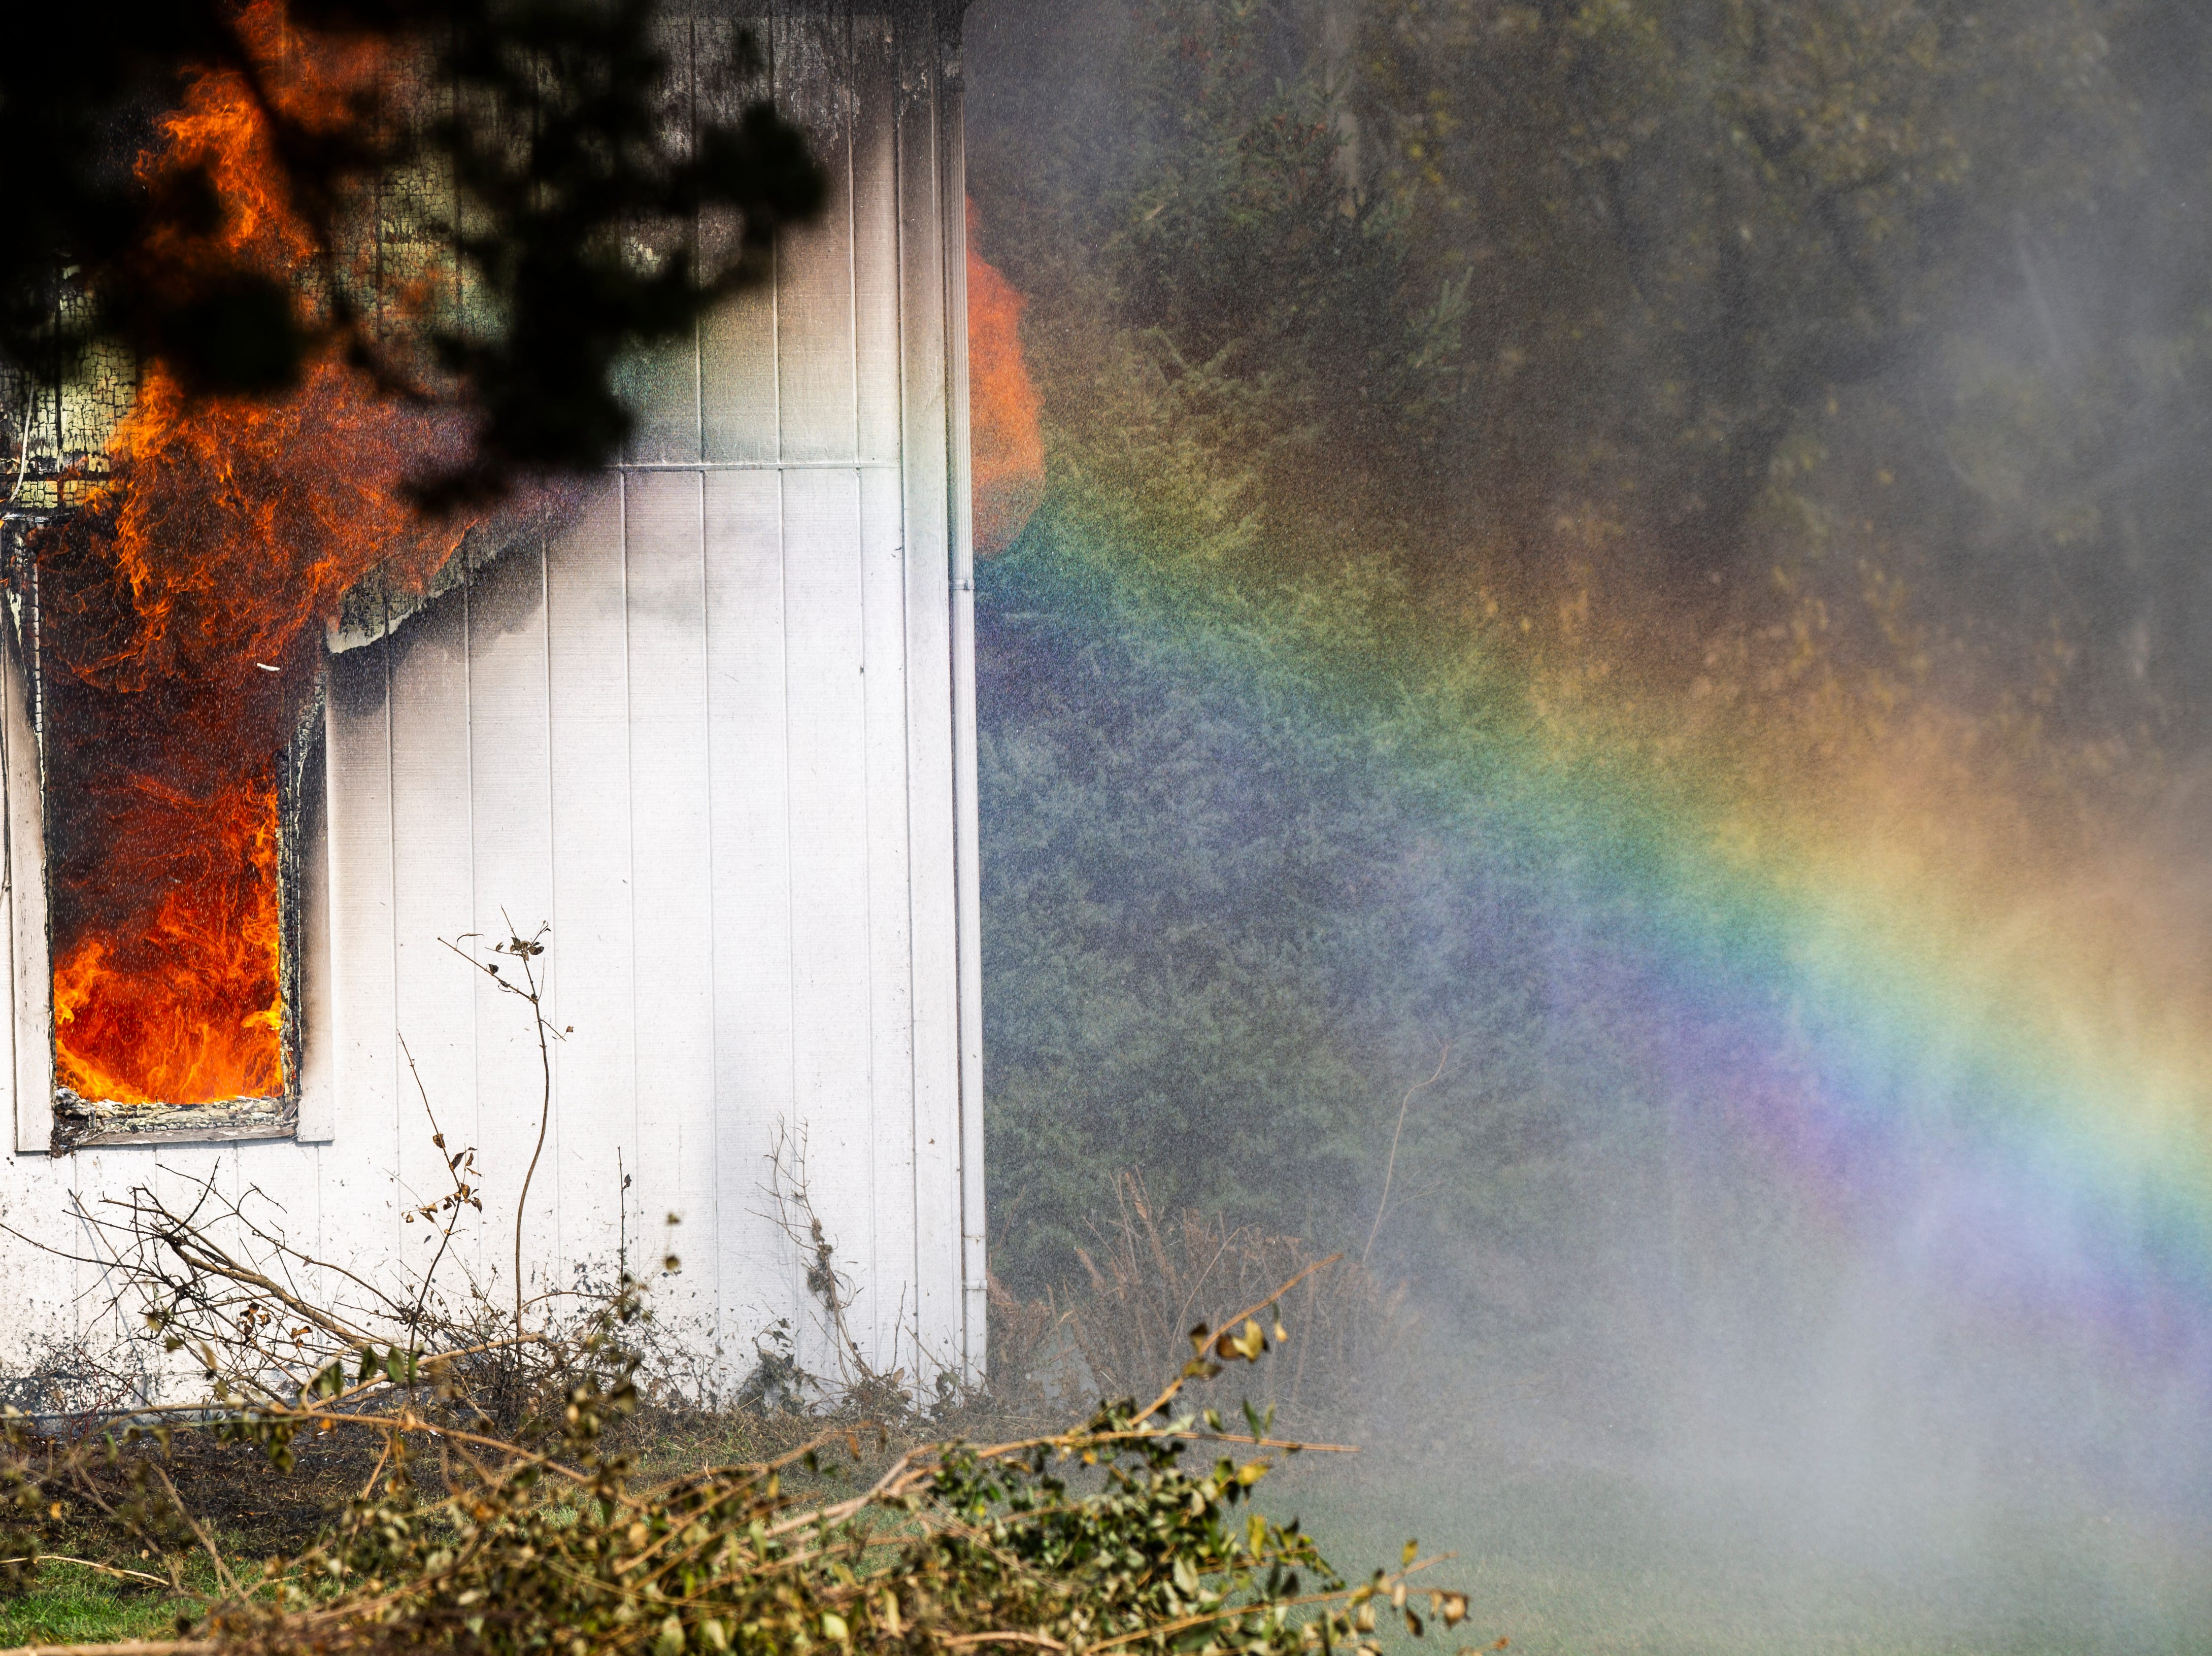 North Liberty Fire Department conducts a controlled burn fire training exercise of a farm house on Saturday, Oct. 27, 2018, on the east side of Liberty High School in North Liberty.